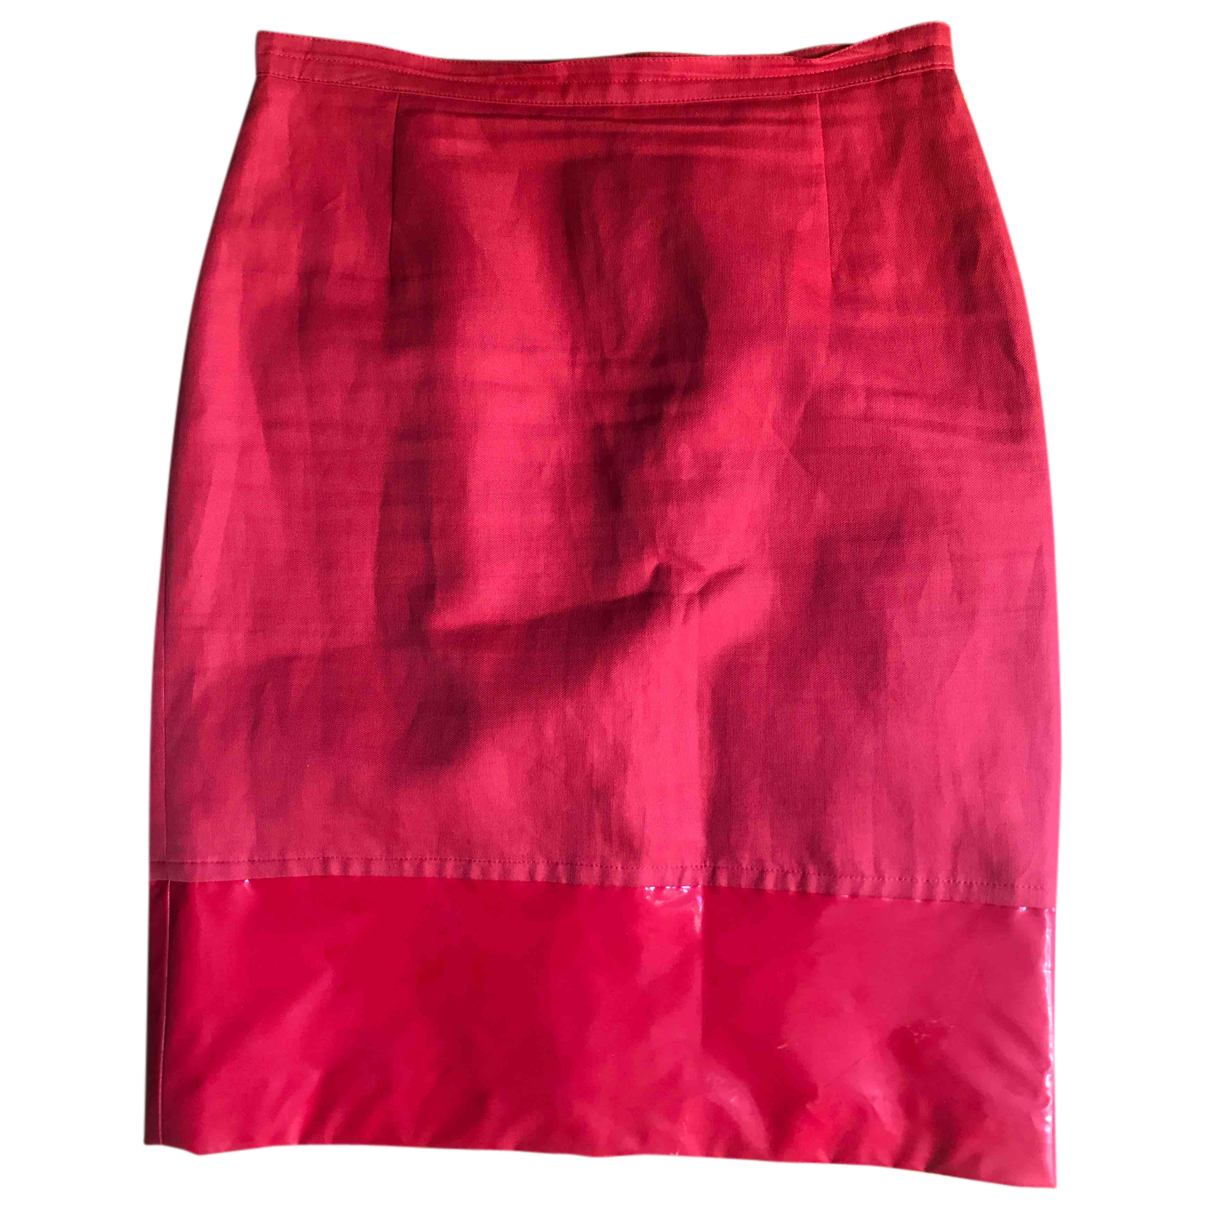 Max Mara N Red Cotton skirt for Women 42 IT